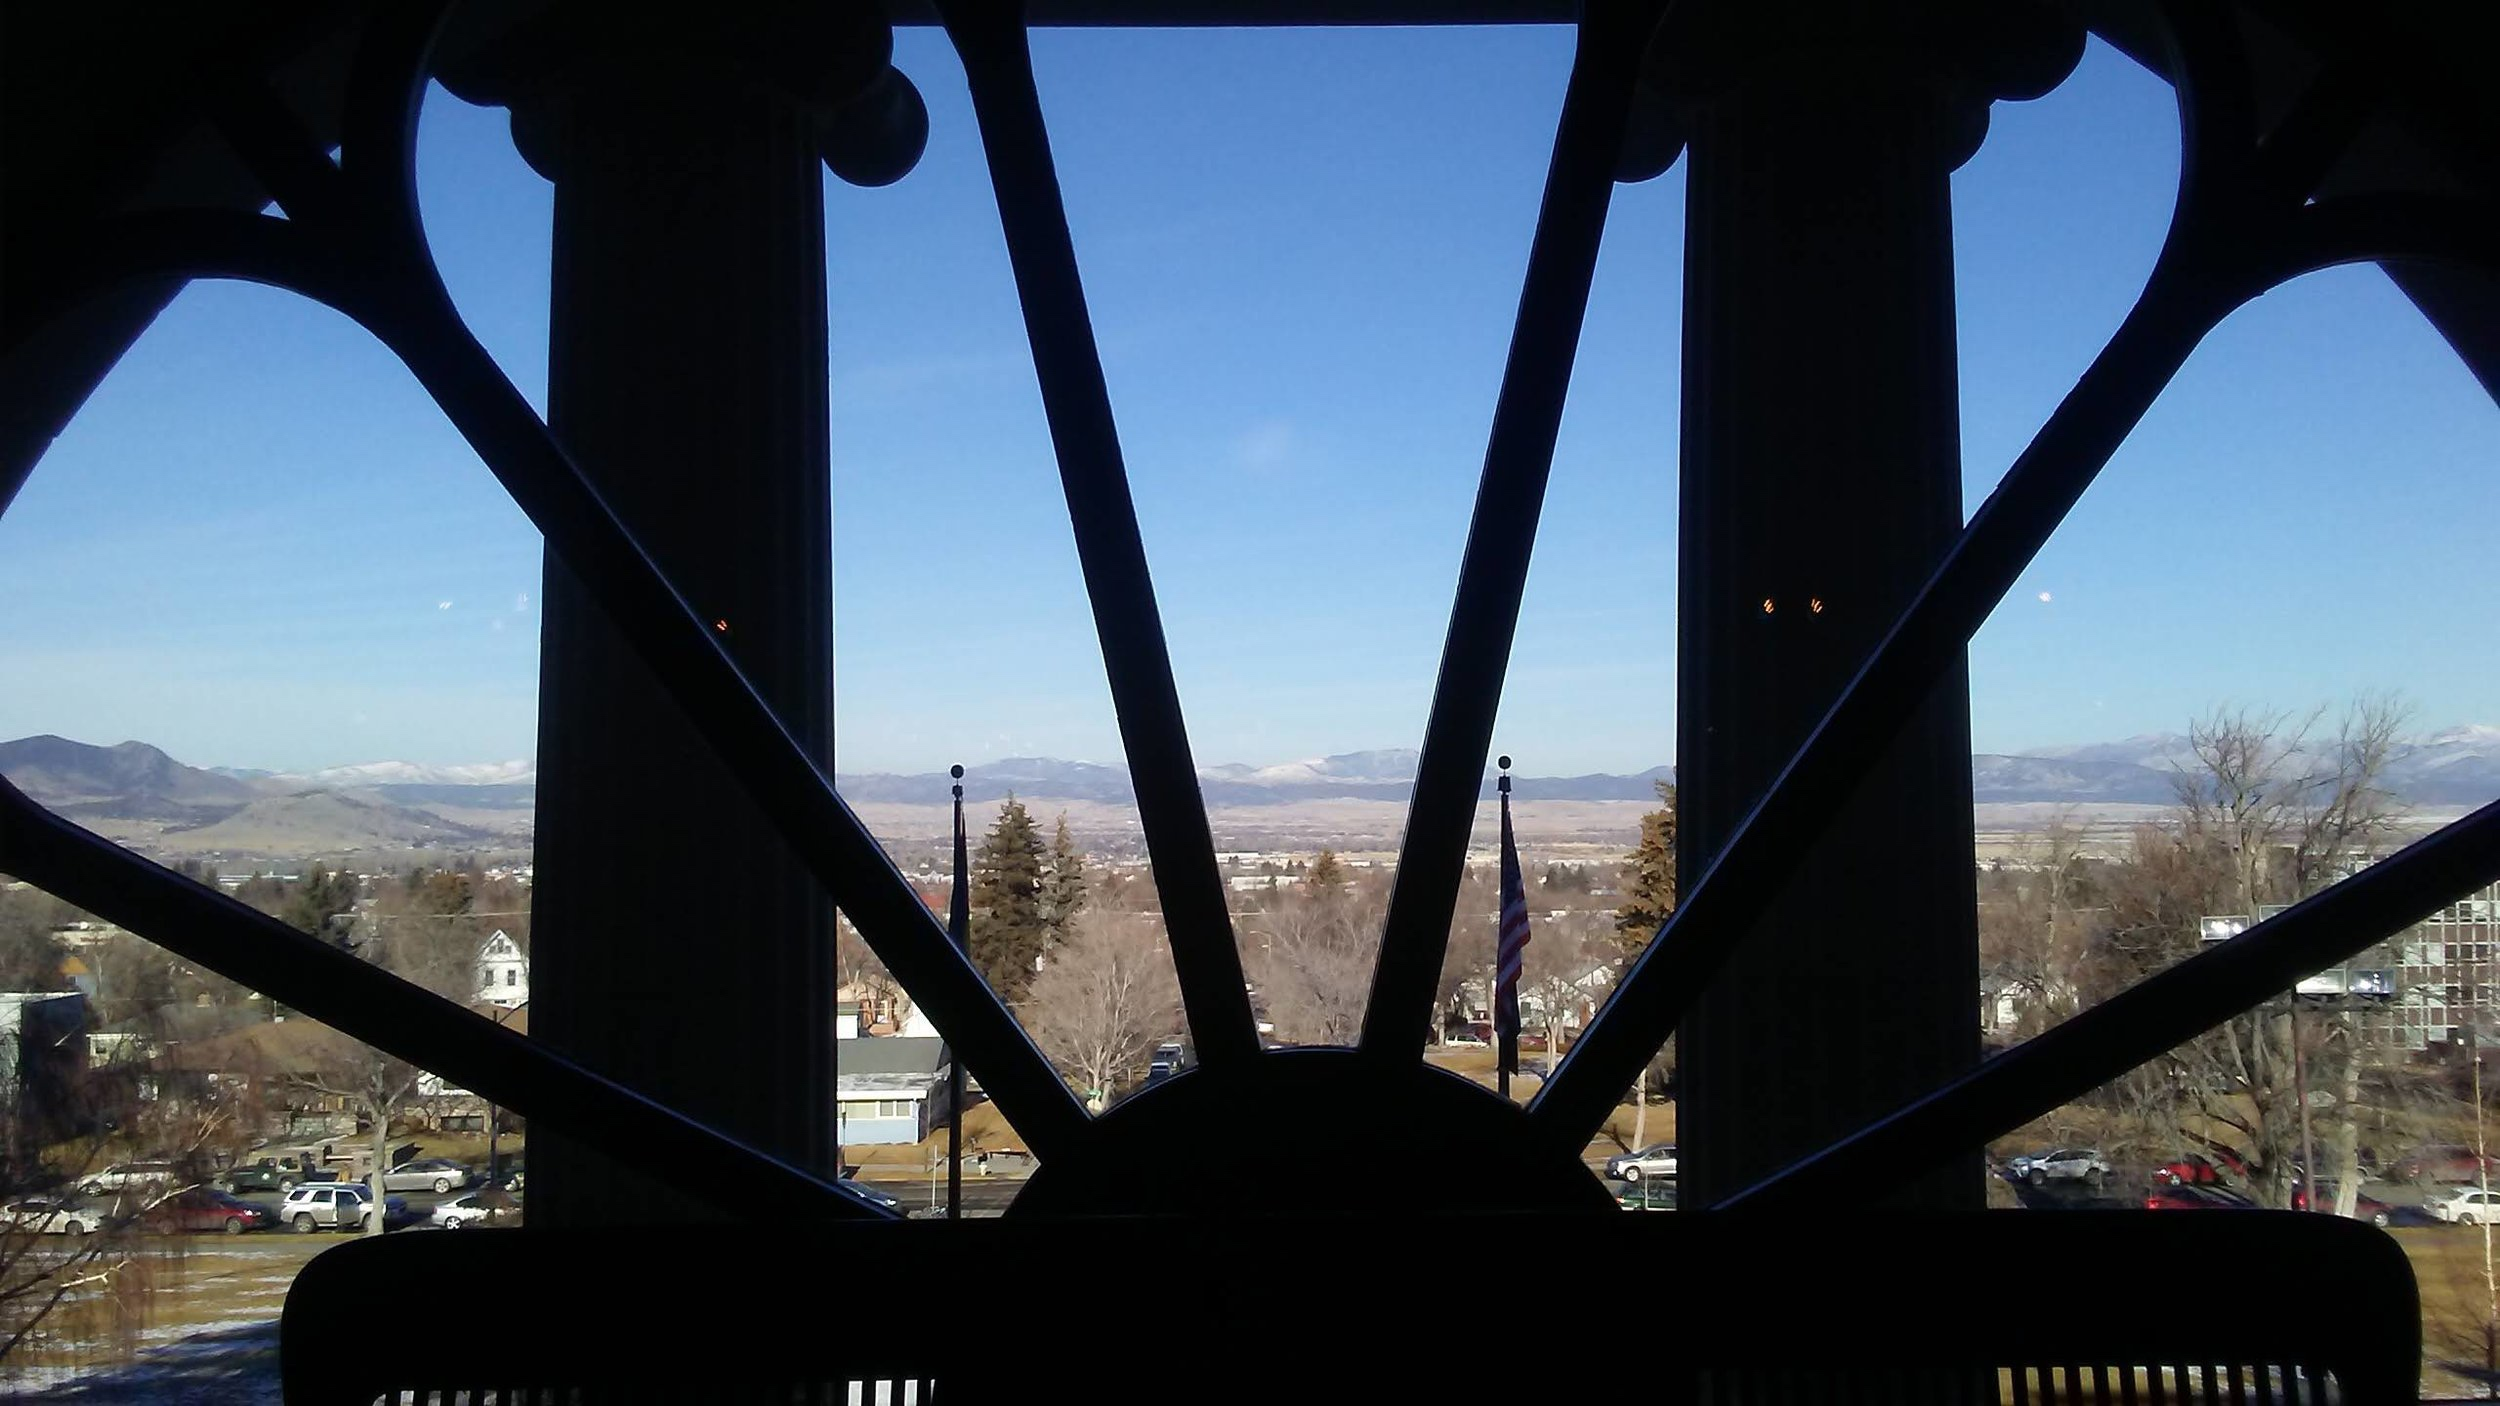 Big Belt Mountains (Helena National Forest) on a bluebird day as seen from the Montana state capitol building in Helena.